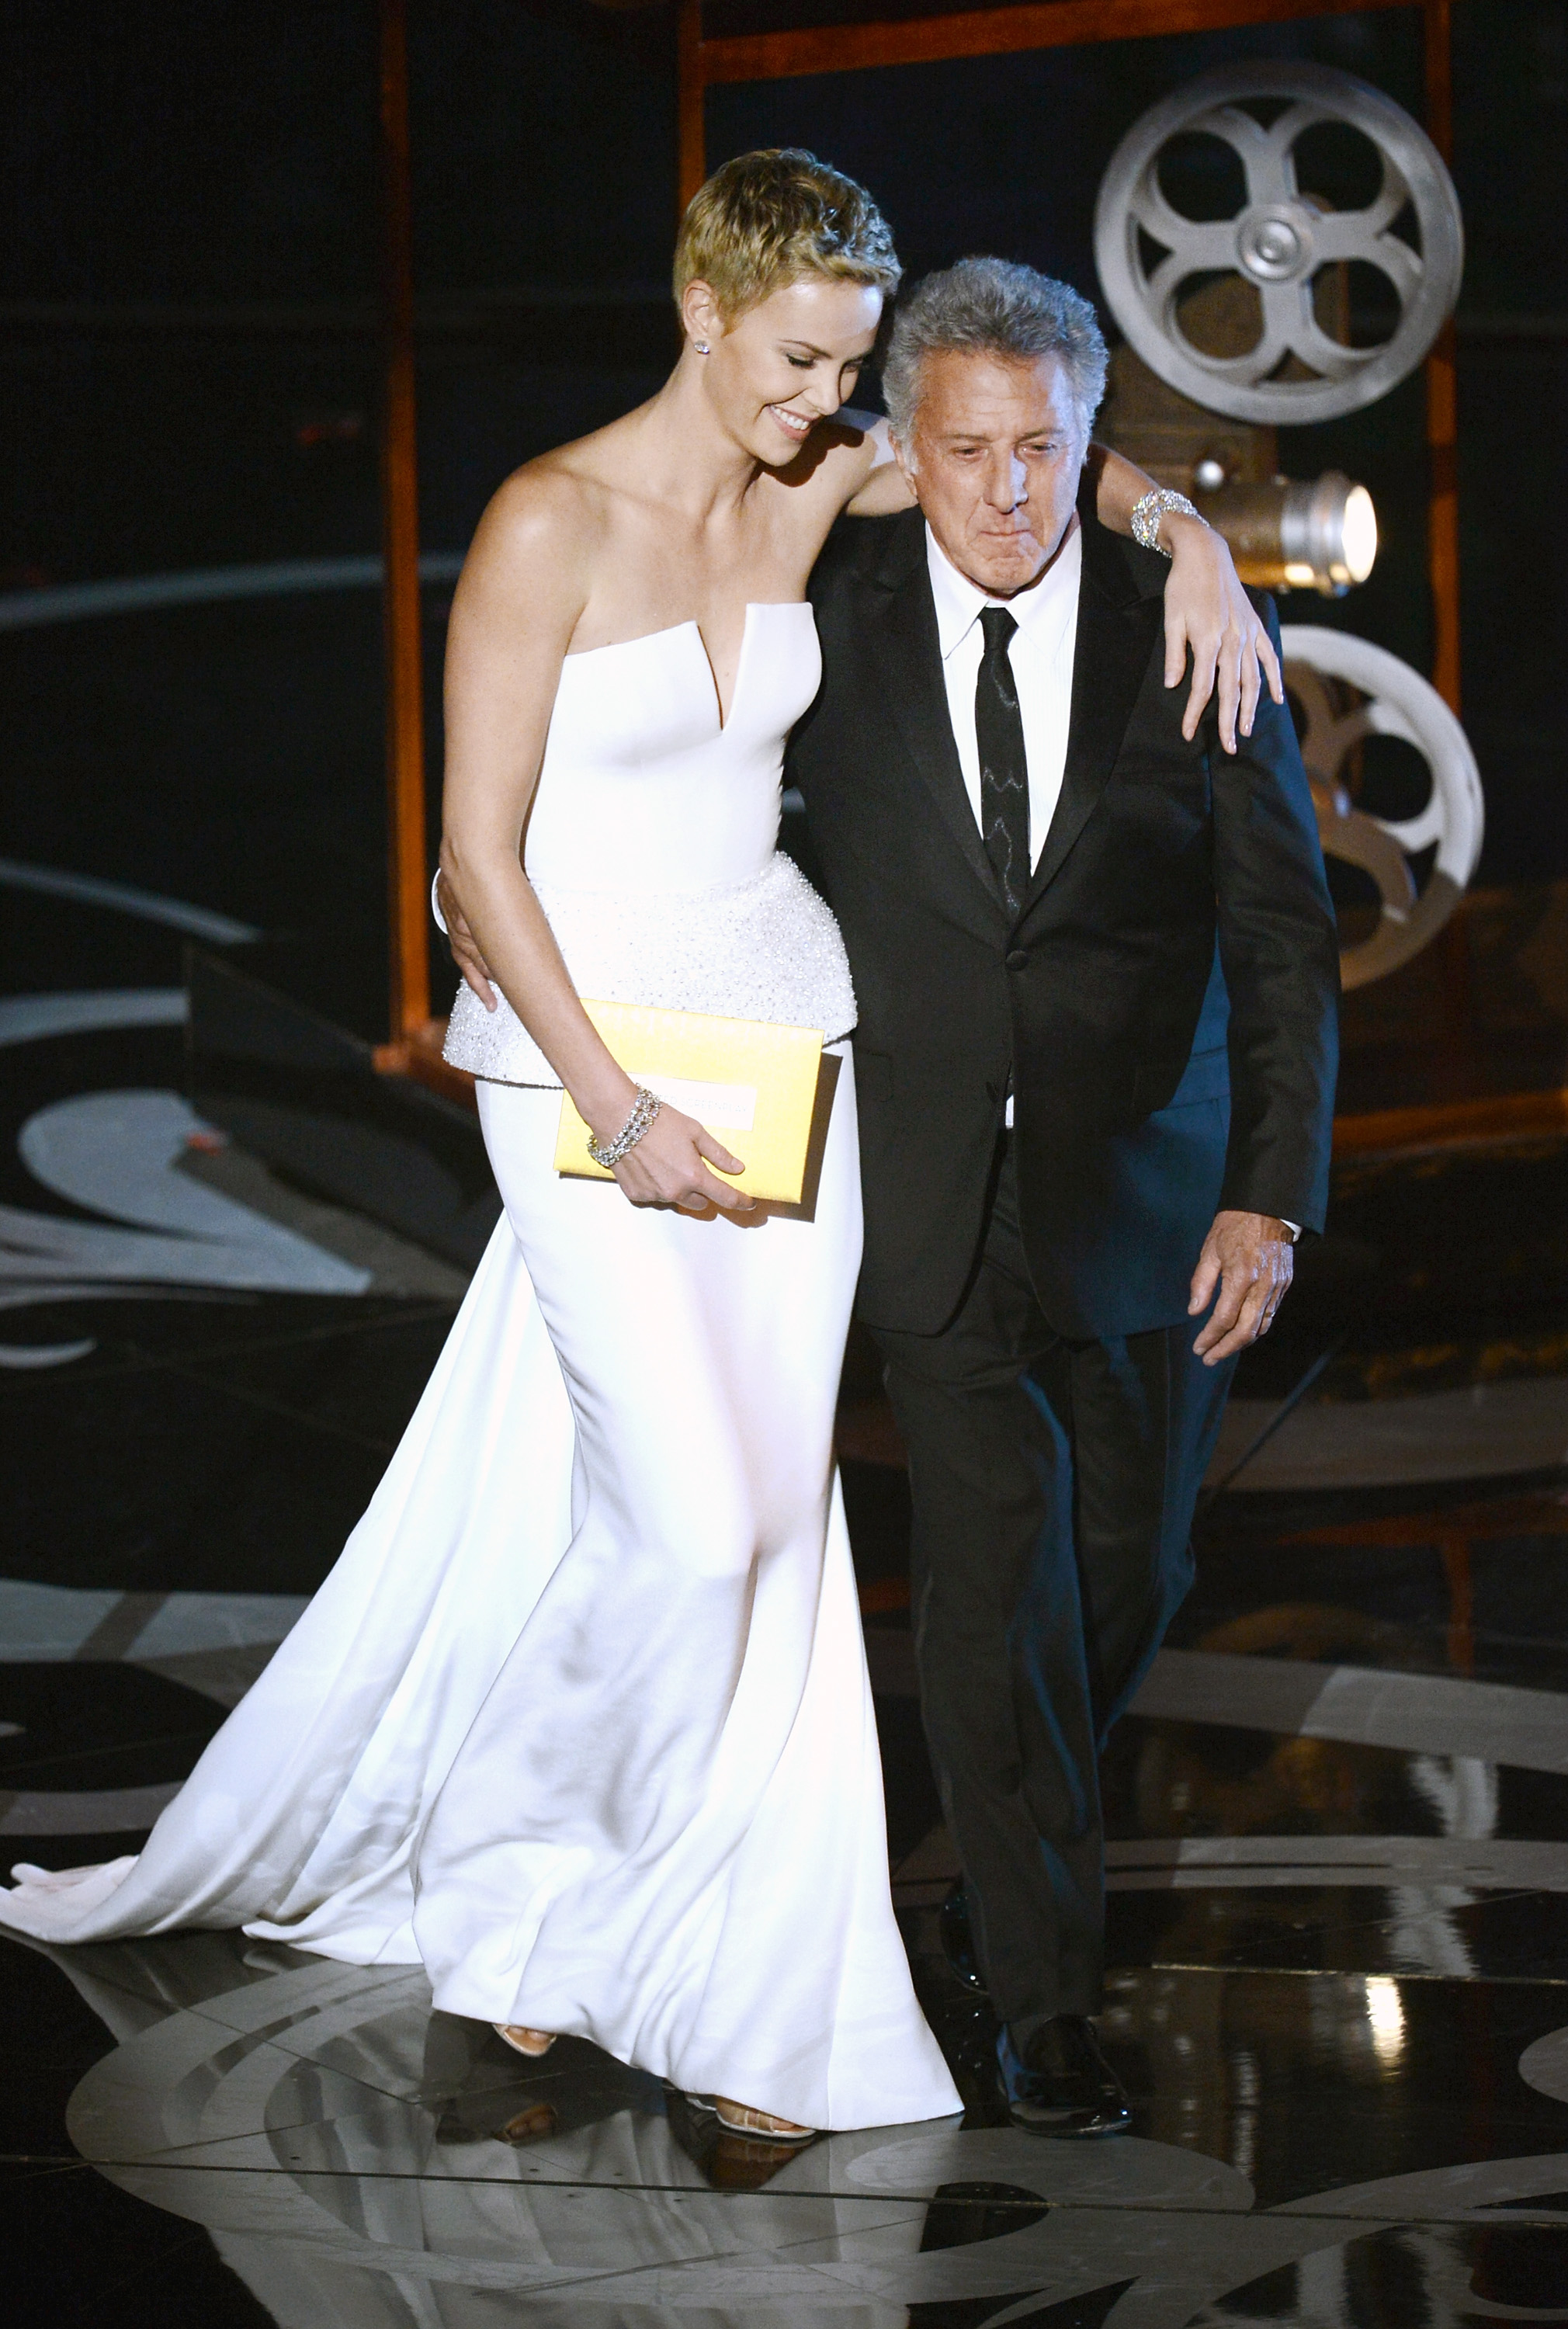 Charlize Theron hugged Dustin Hoffman on stage.